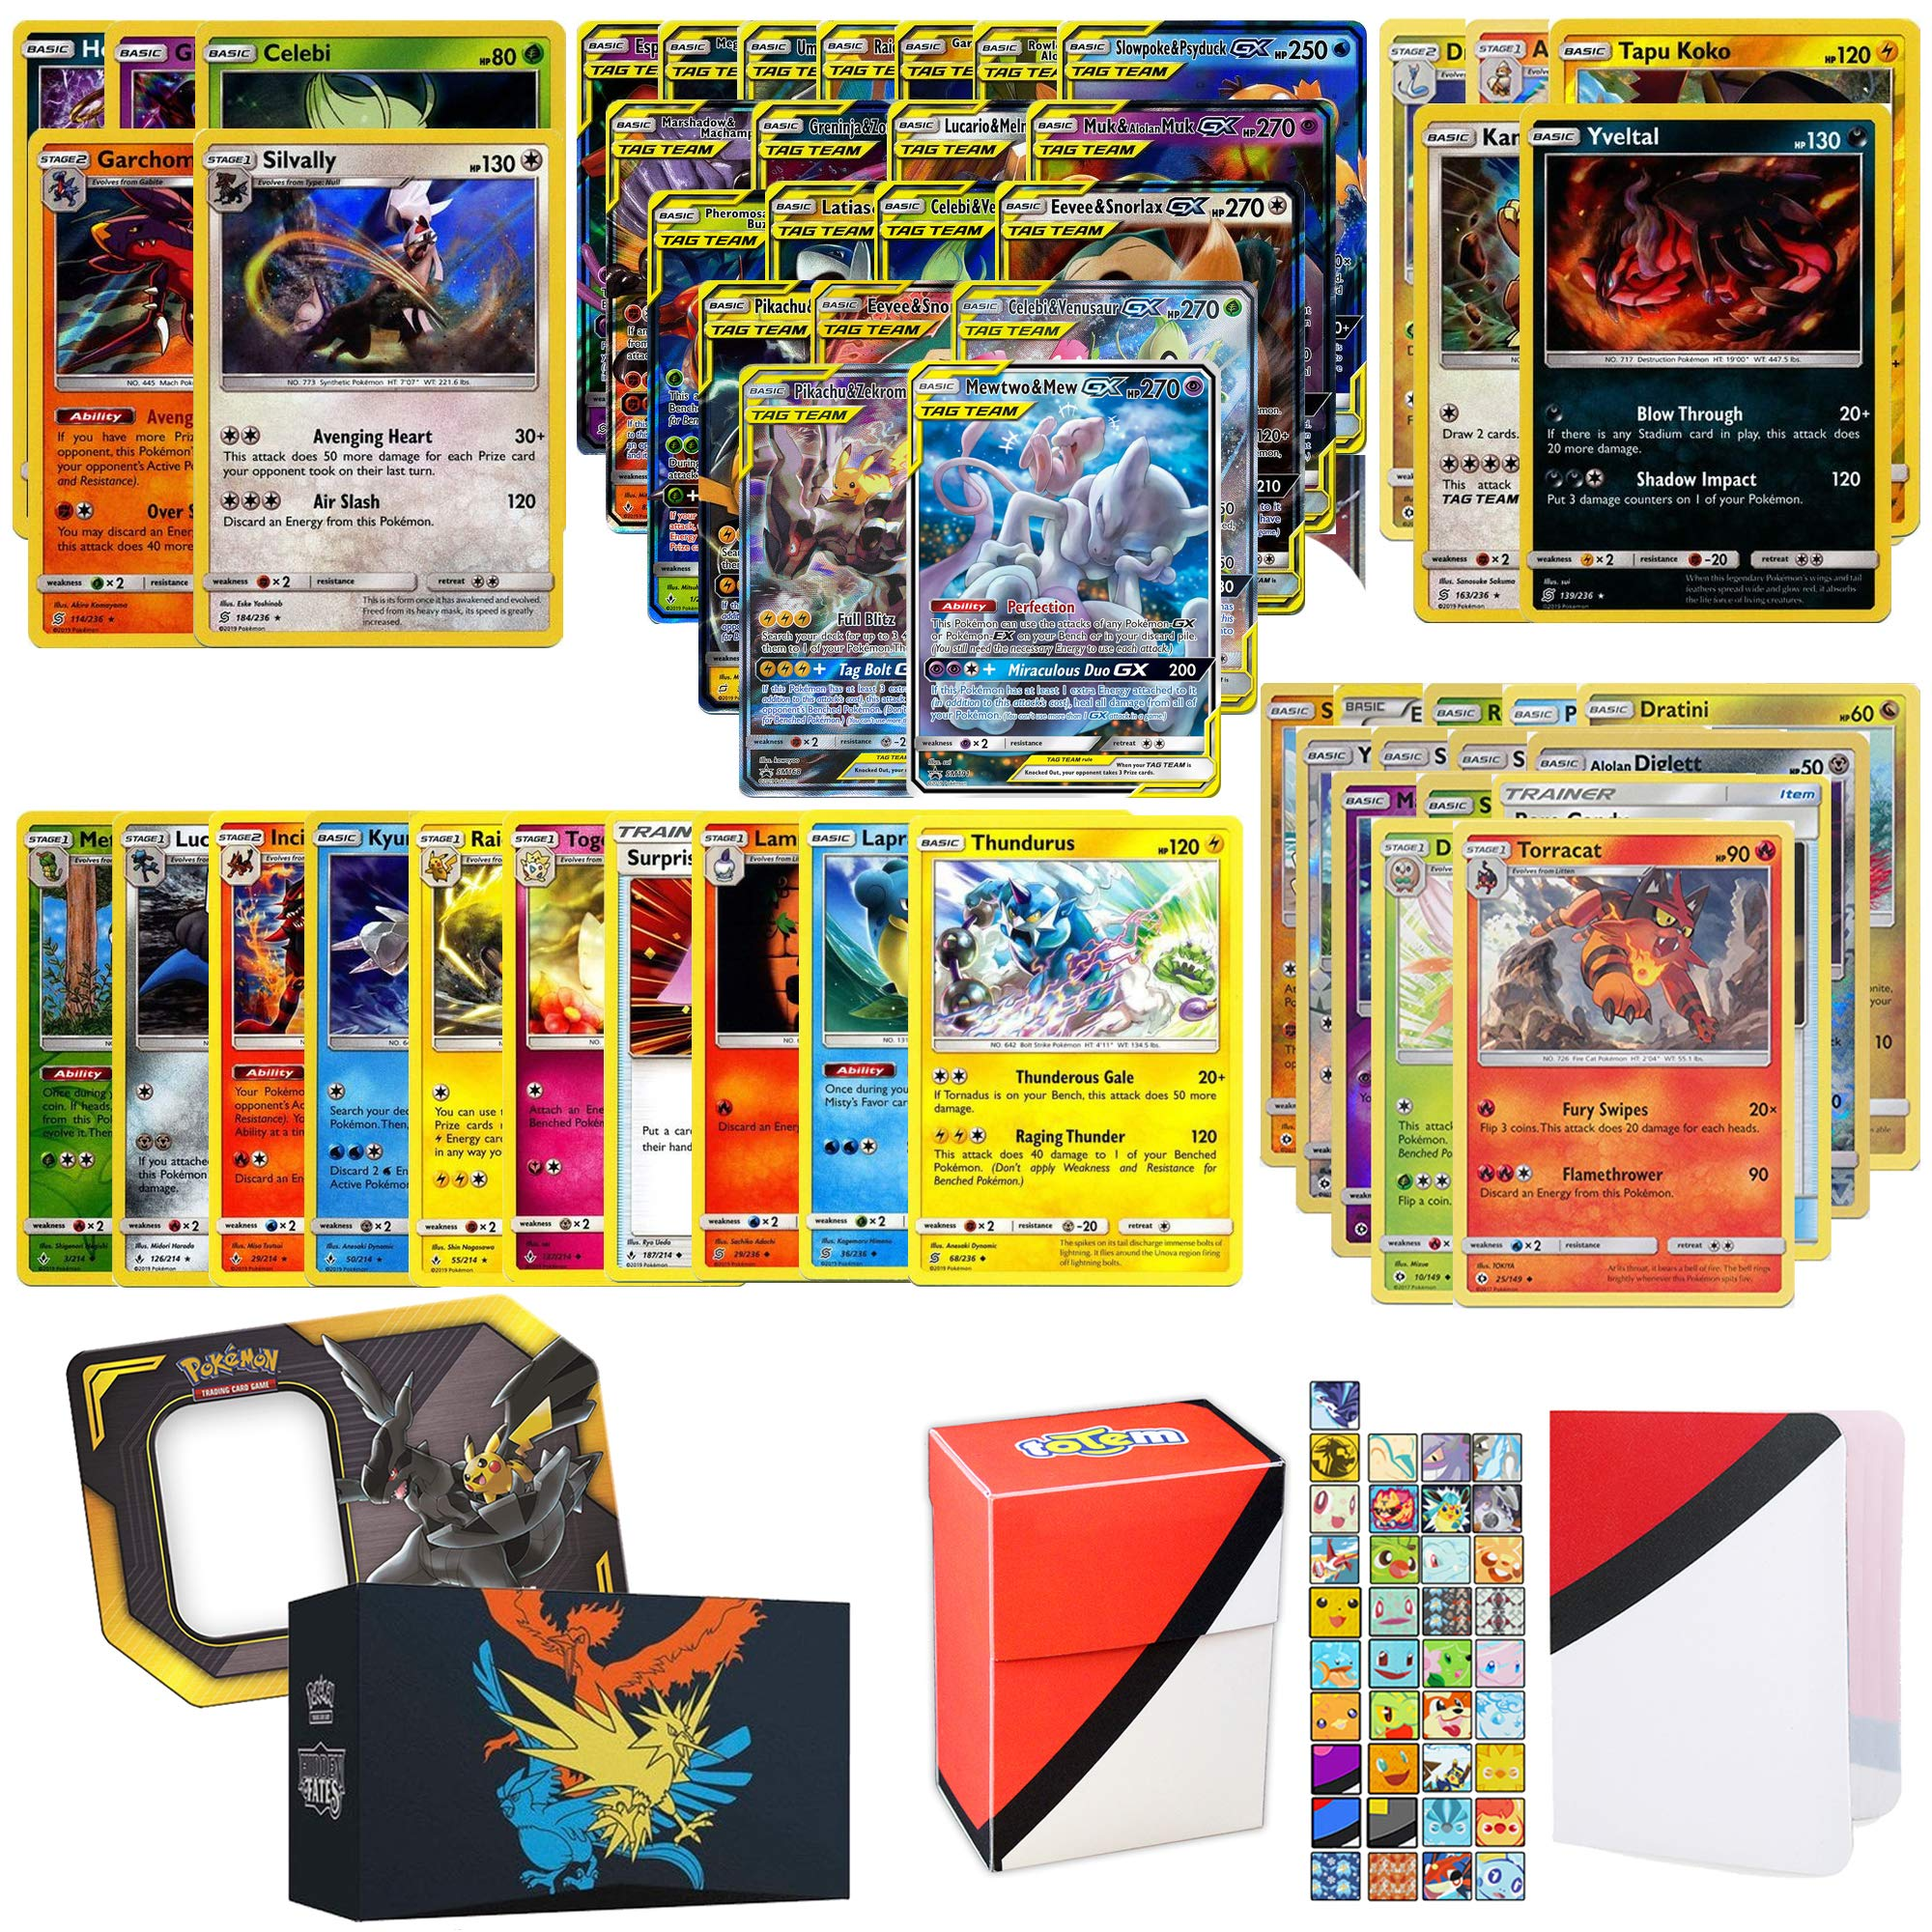 Totem World Pokemon Tag Team GX Ultra Rare Guaranteed with 5 Holo Rares, 5 Rares, 10 Uncommon Foils, 40 Regular Cards, Totem Deck Box & Mini Binder Collectors Album in Hidden Fates Storage Tin or Box by Totem World